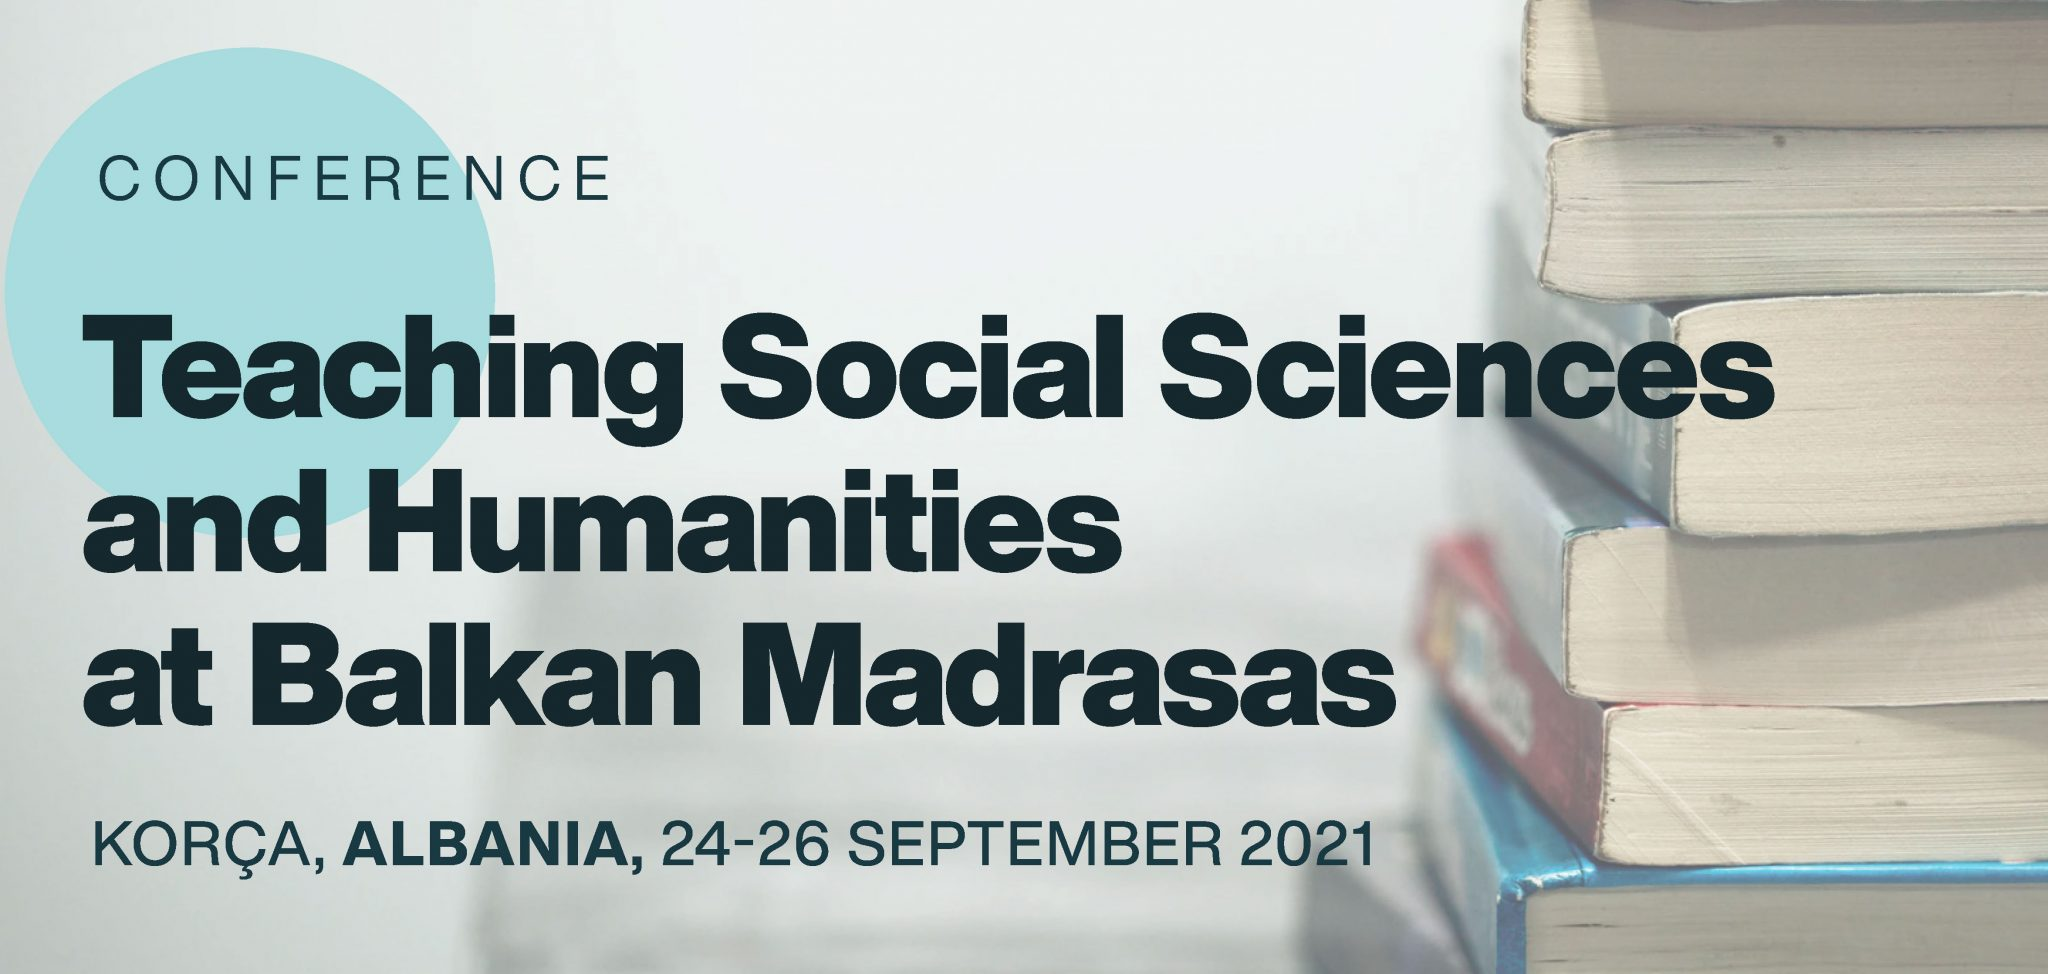 CALL for PAPERS: Teaching Social Sciences and Humanities at Balkan Madrasas